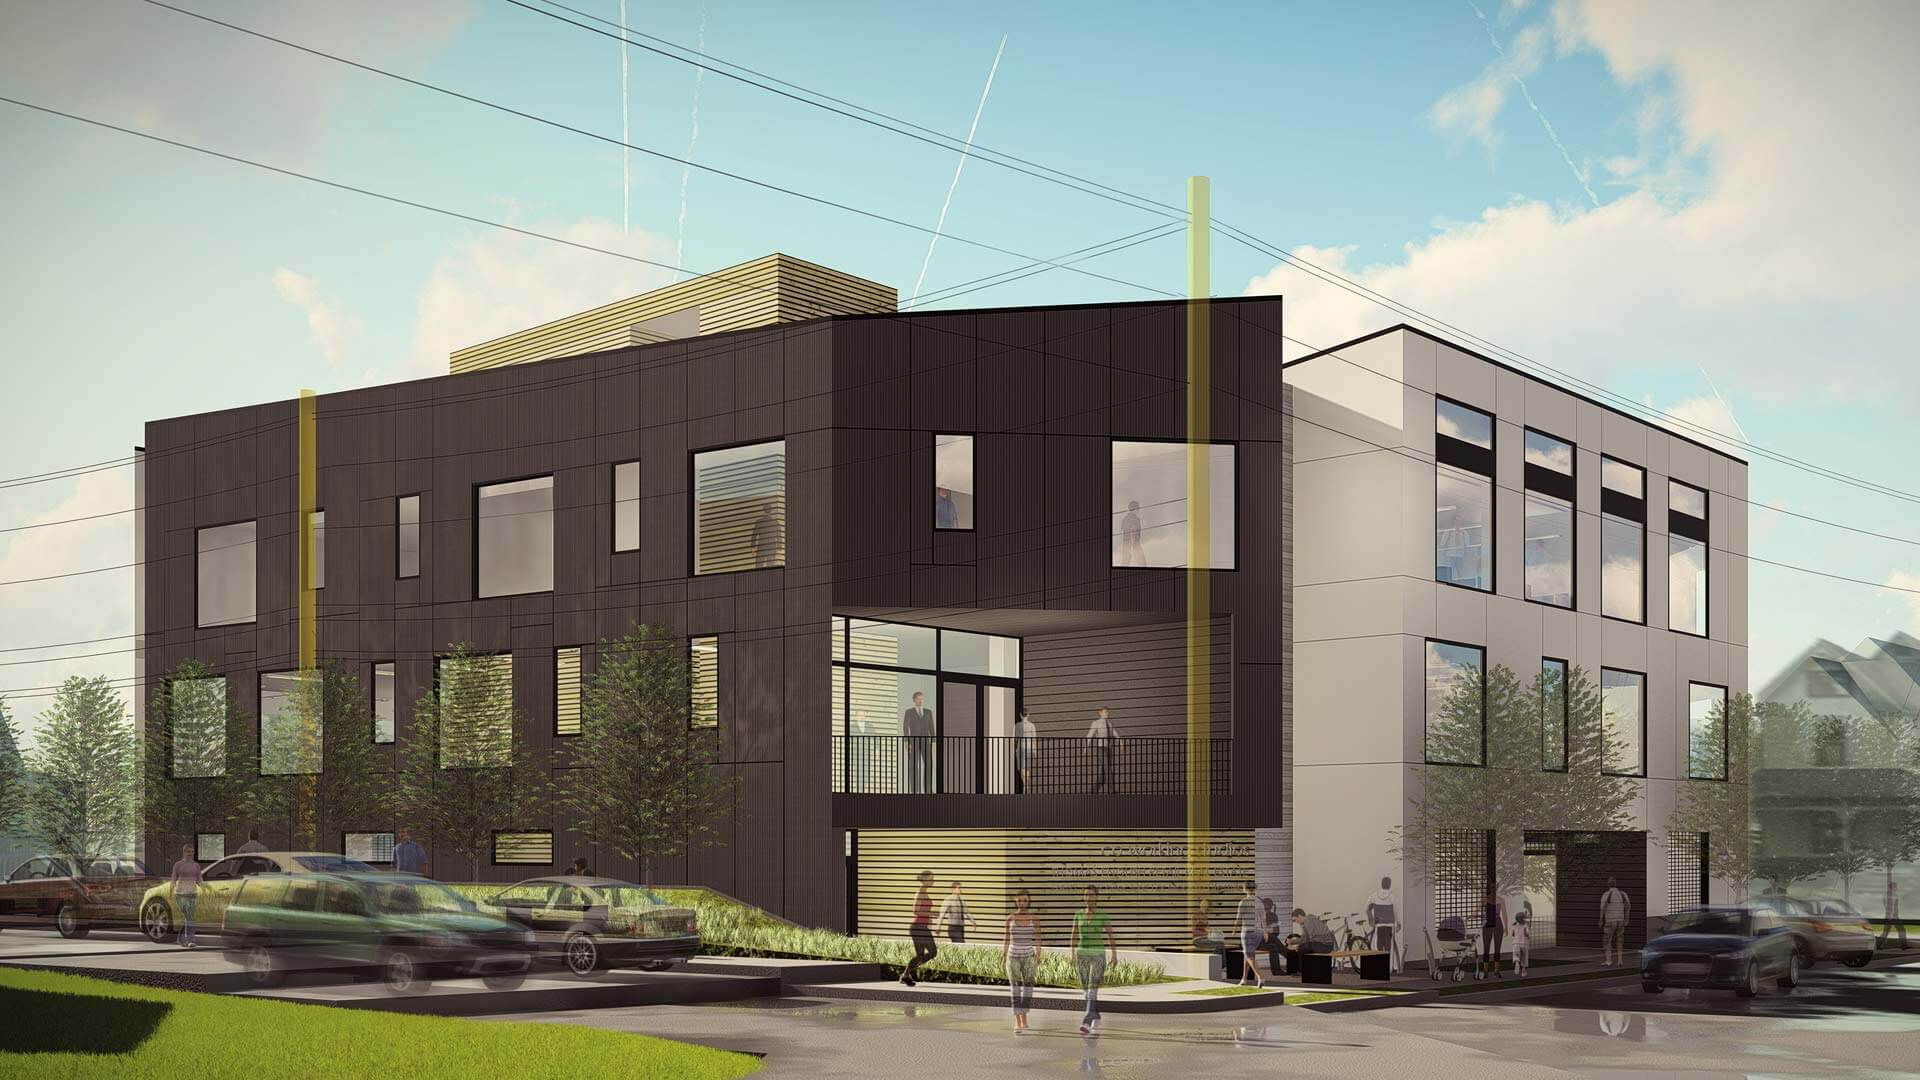 Northeast Corner Design Development (Dec 2017) - G BLOC MIXED USE Development - Broad Ripple North Village - Urban Infill - Indianapolis - Christopher Short, Indianapolis Architect, HAUS Architecture For Modern Lifestyles, WERK | Building Modern, Thomas English Retail Real Estate